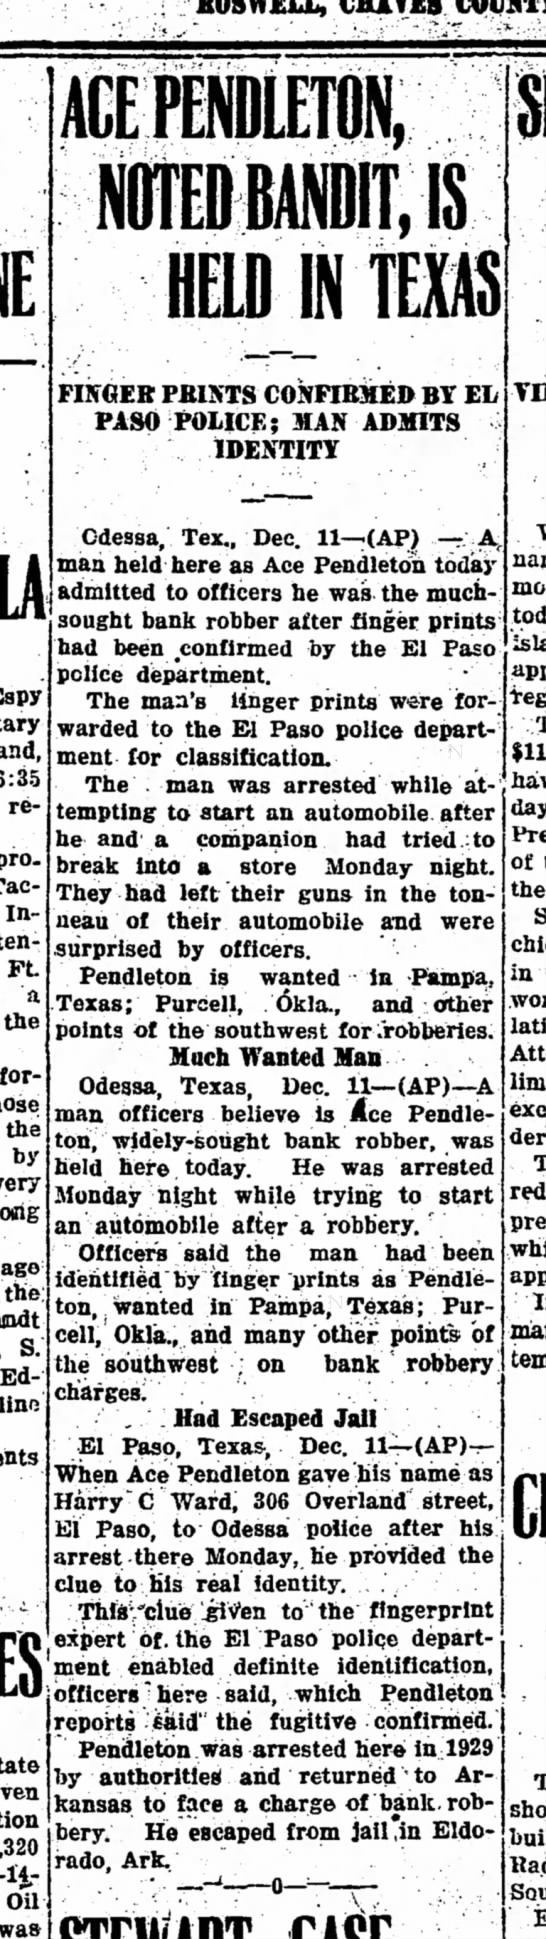 11 Dec 1930 - KOSWELL, CHATE8 received professor' Tactics In-...